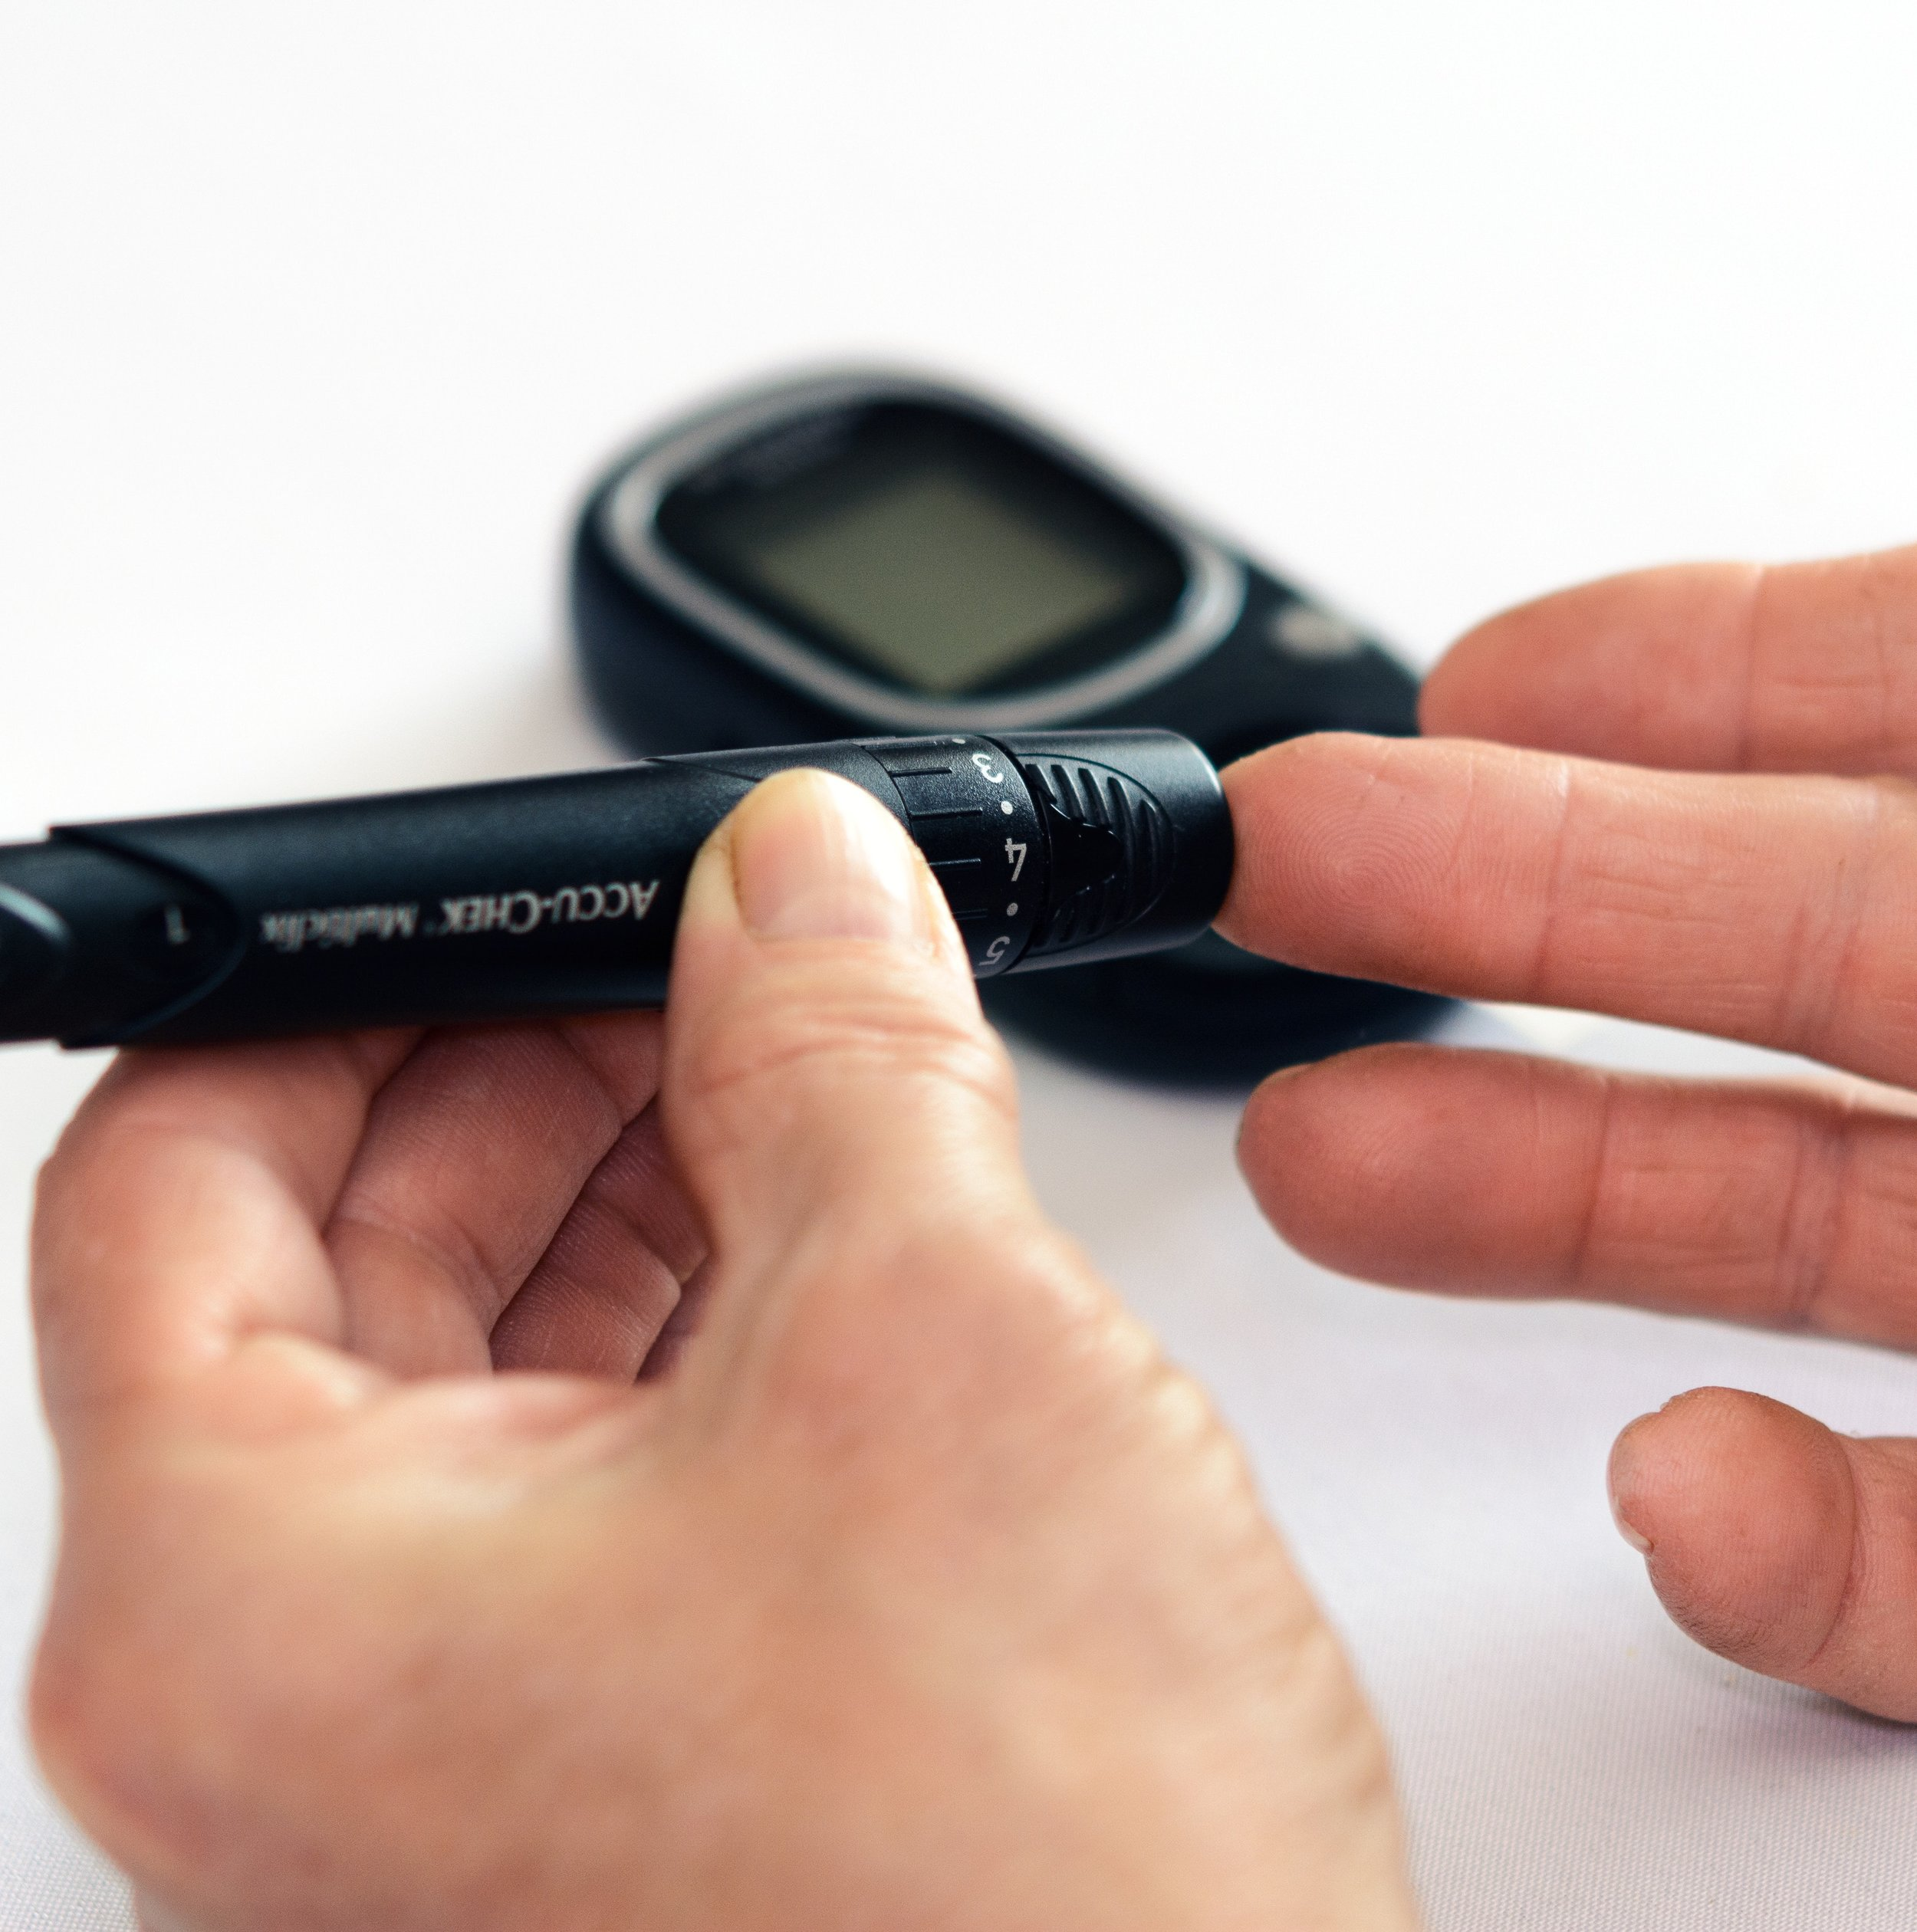 checking-close-up-diabetes-1001897.jpg